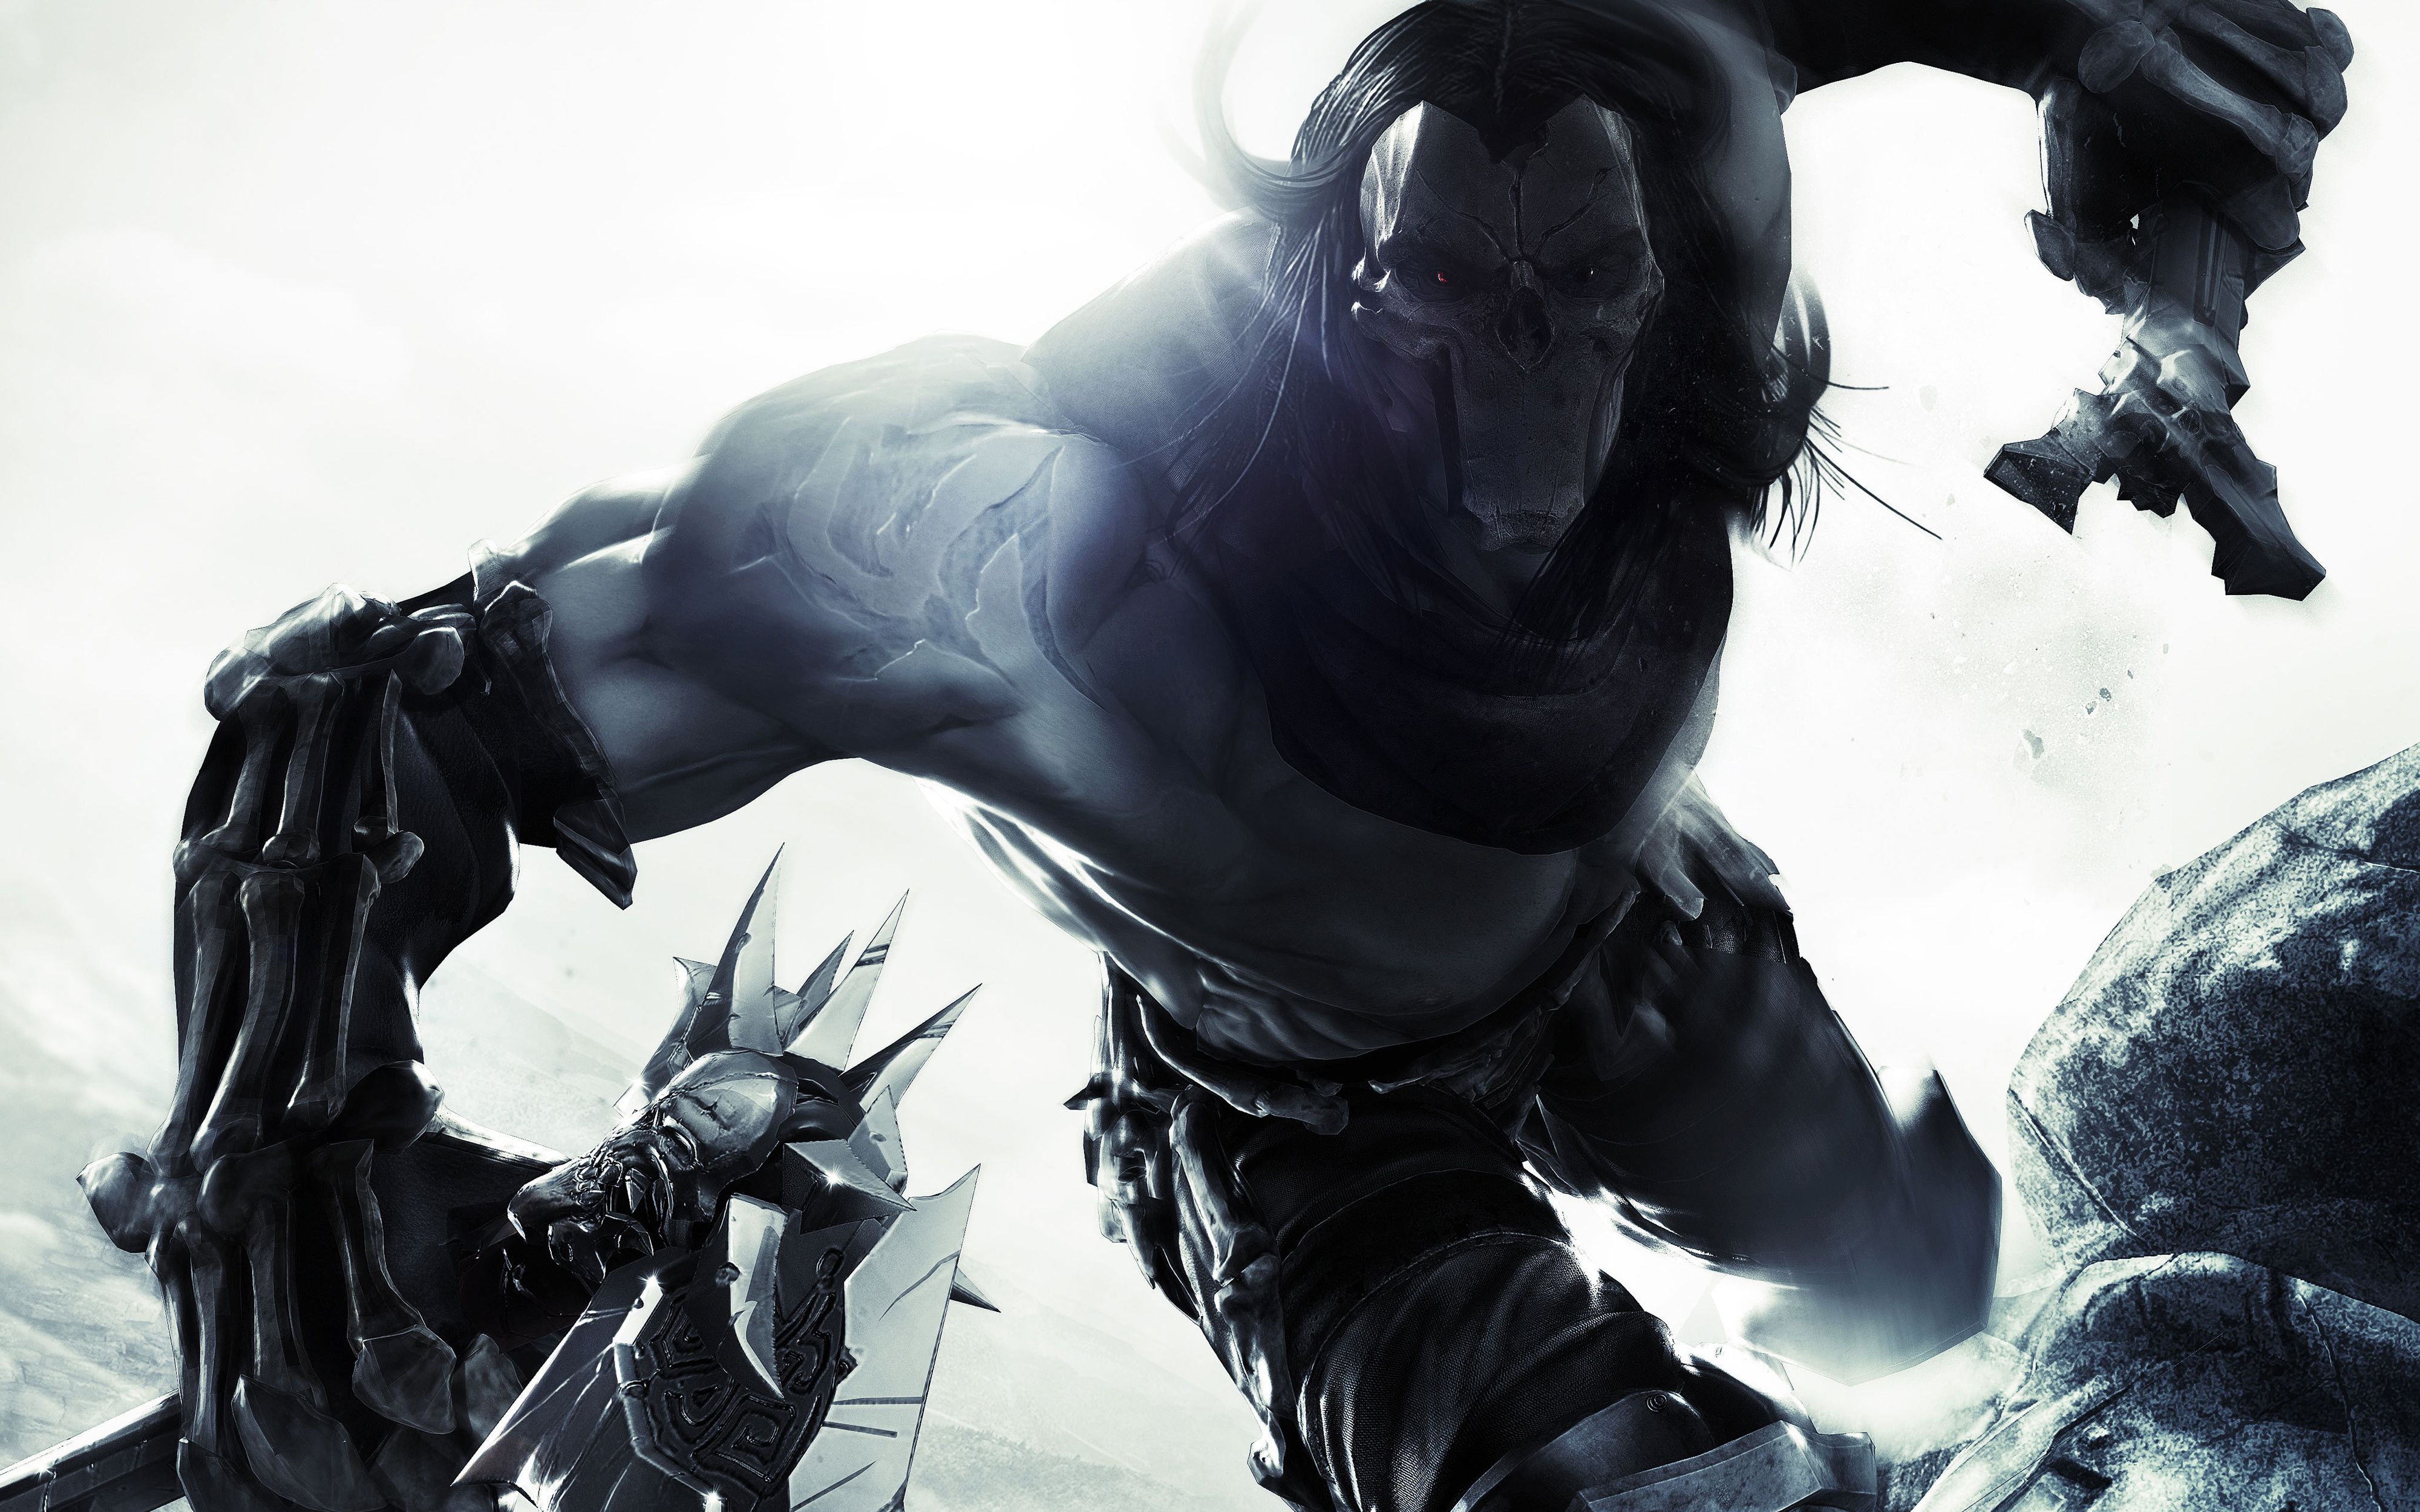 Darksiders II Game wallpaper